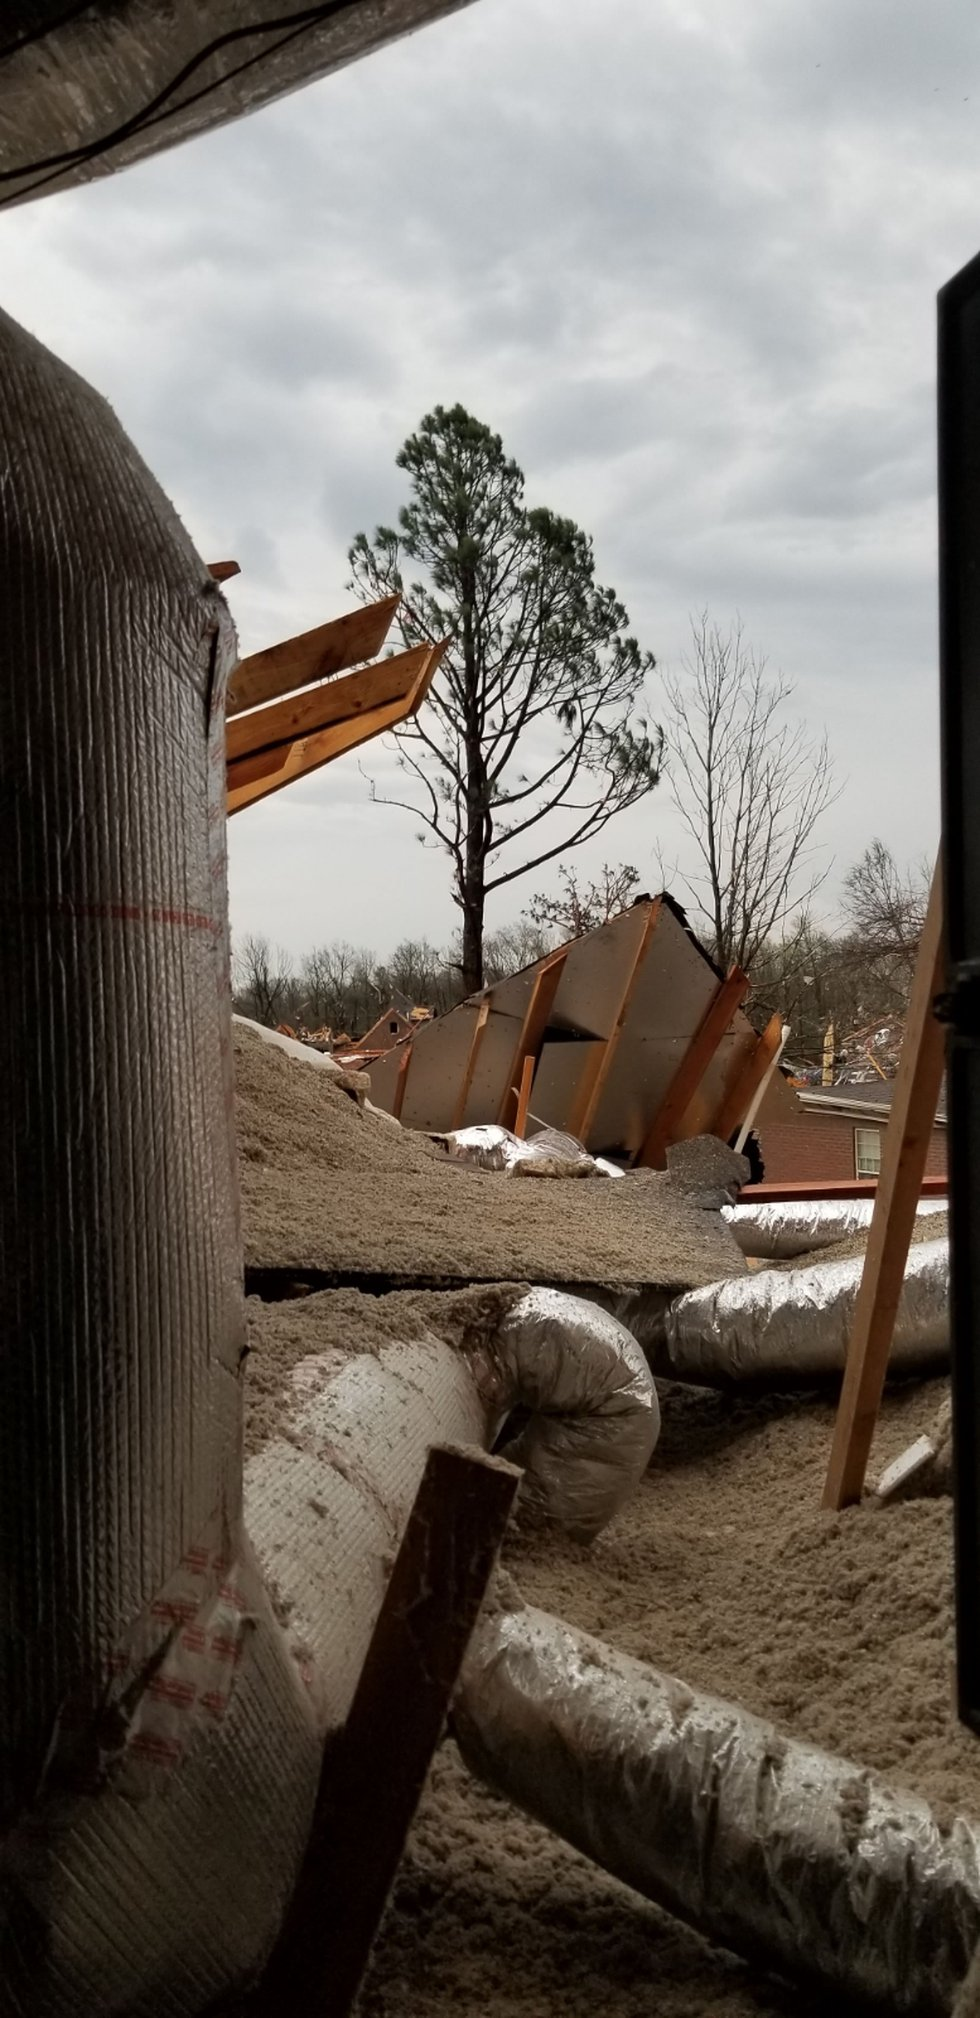 Tornado damage to Diane and Ben Bizzle's home on March 28, 2020